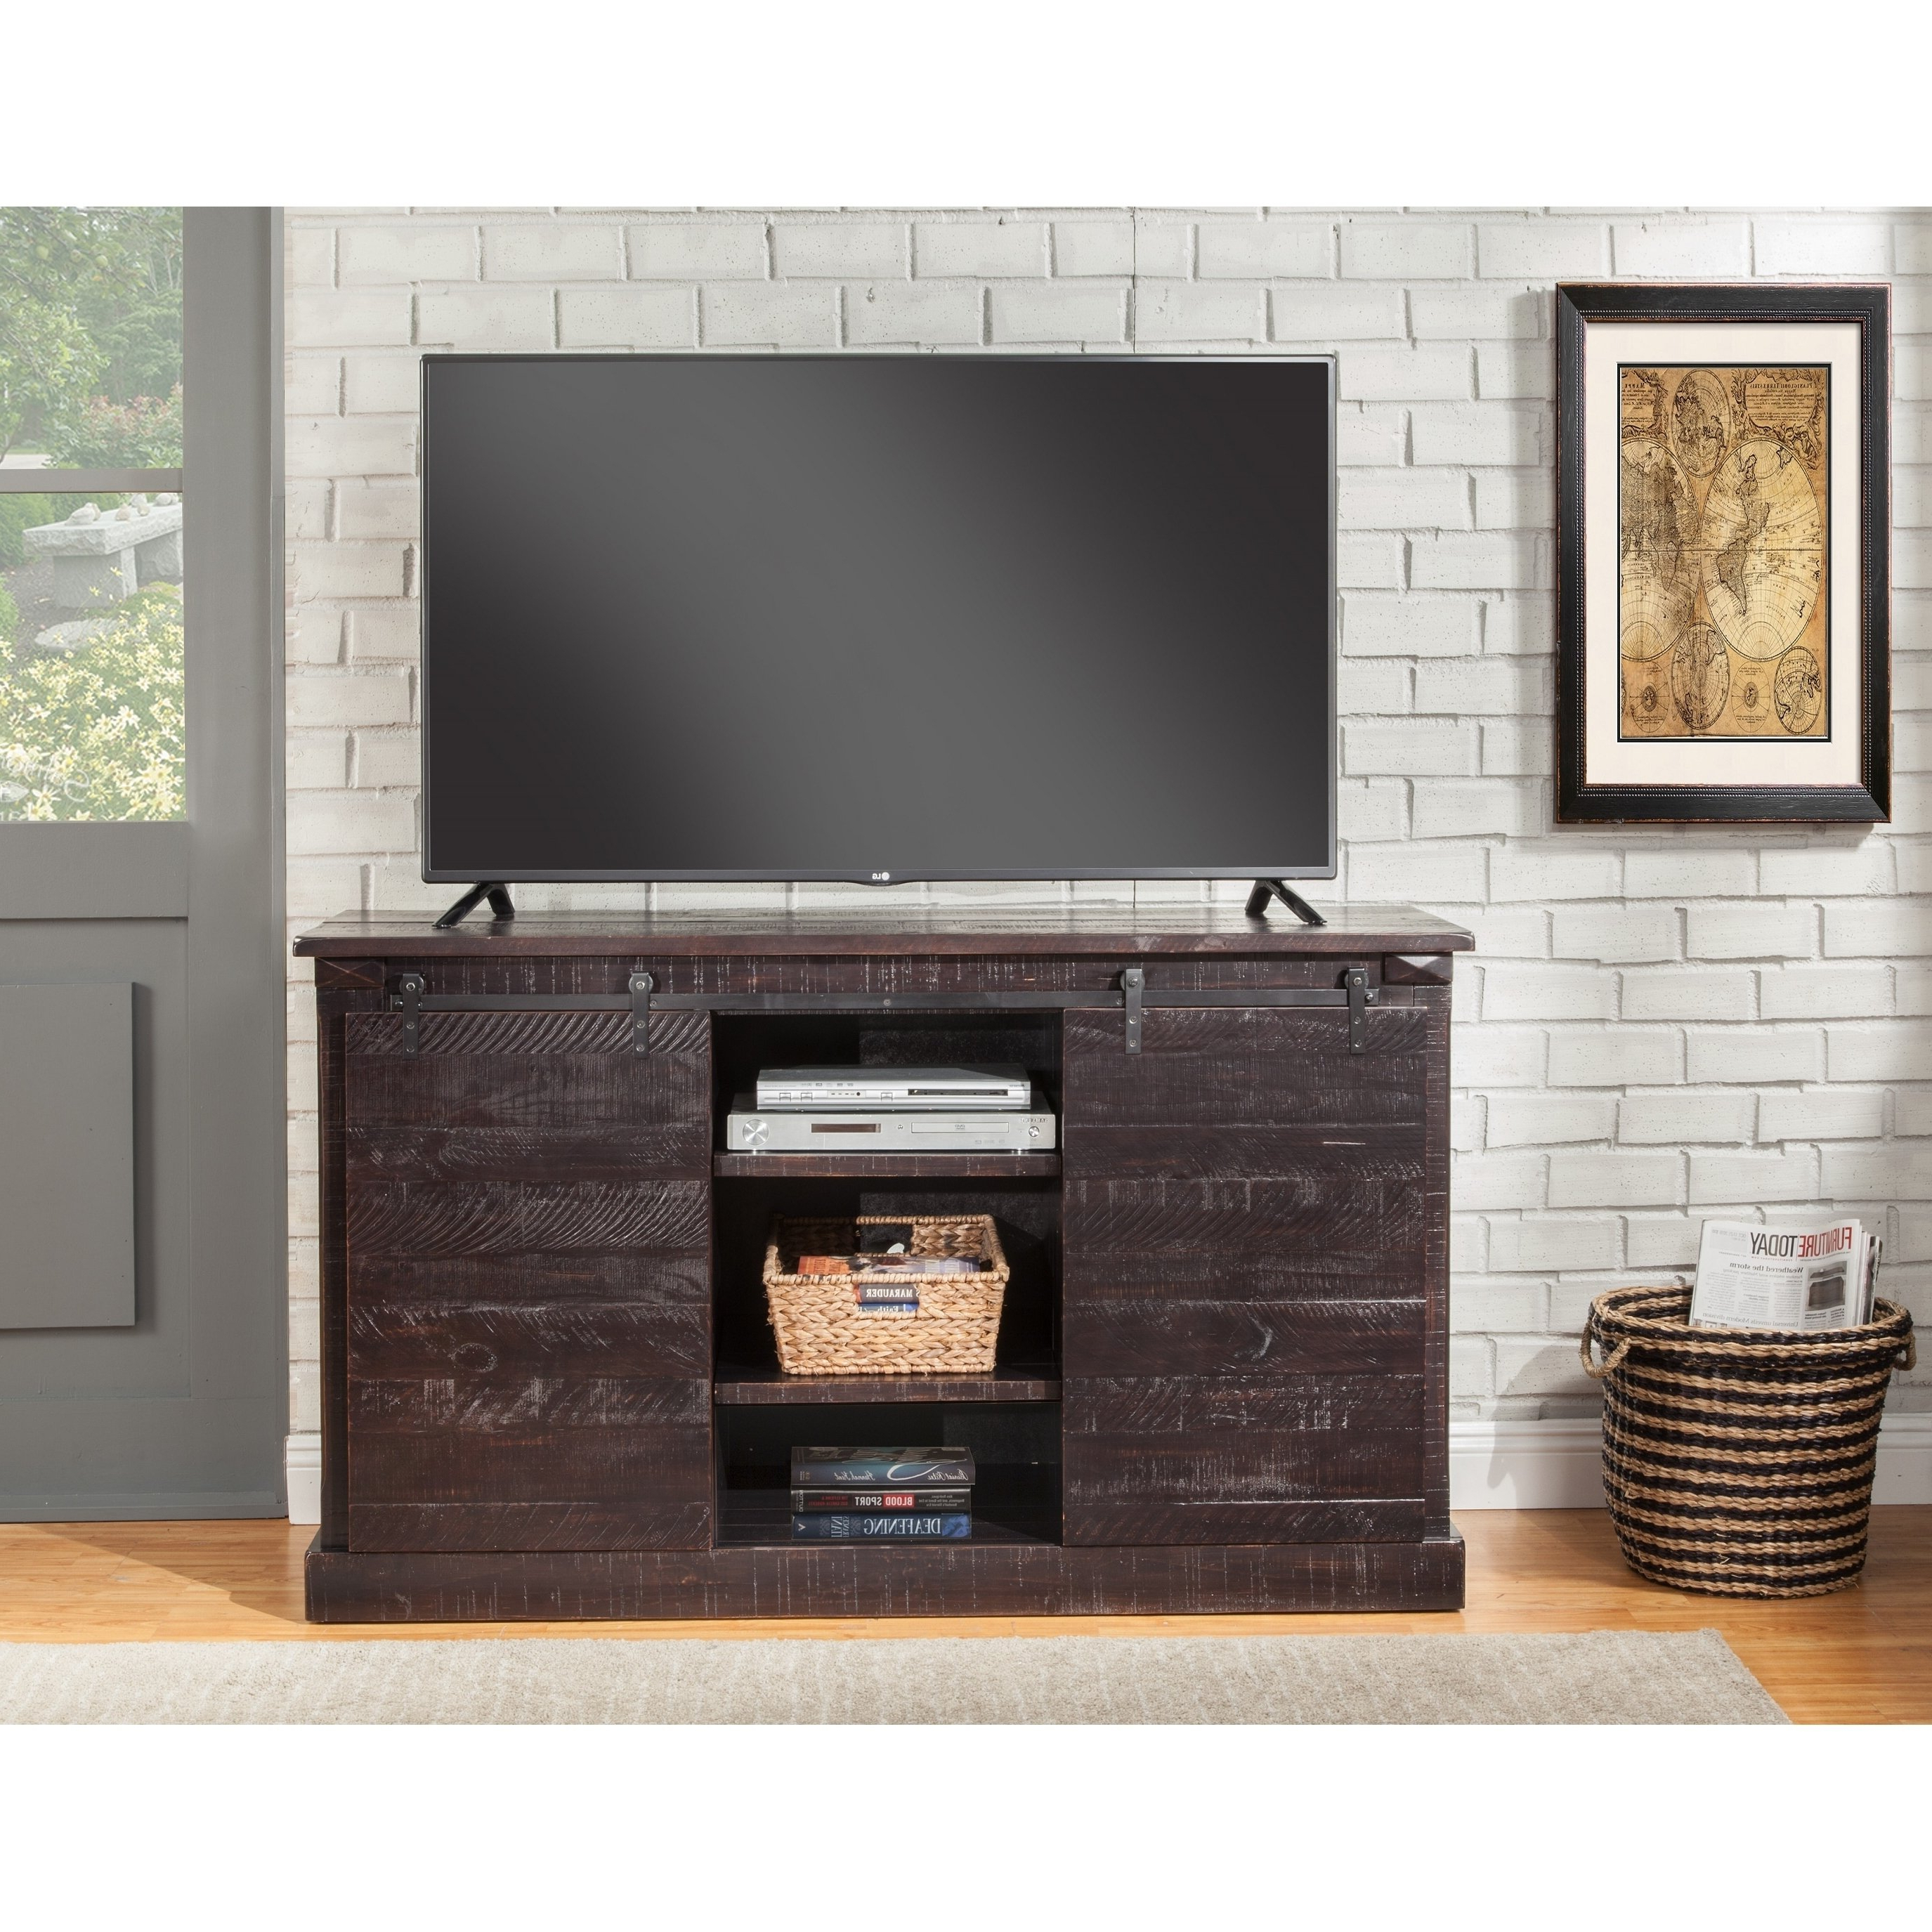 Buy Black, Rustic Tv Stands & Entertainment Centers Online At Pertaining To Wakefield 97 Inch Tv Stands (Gallery 9 of 20)